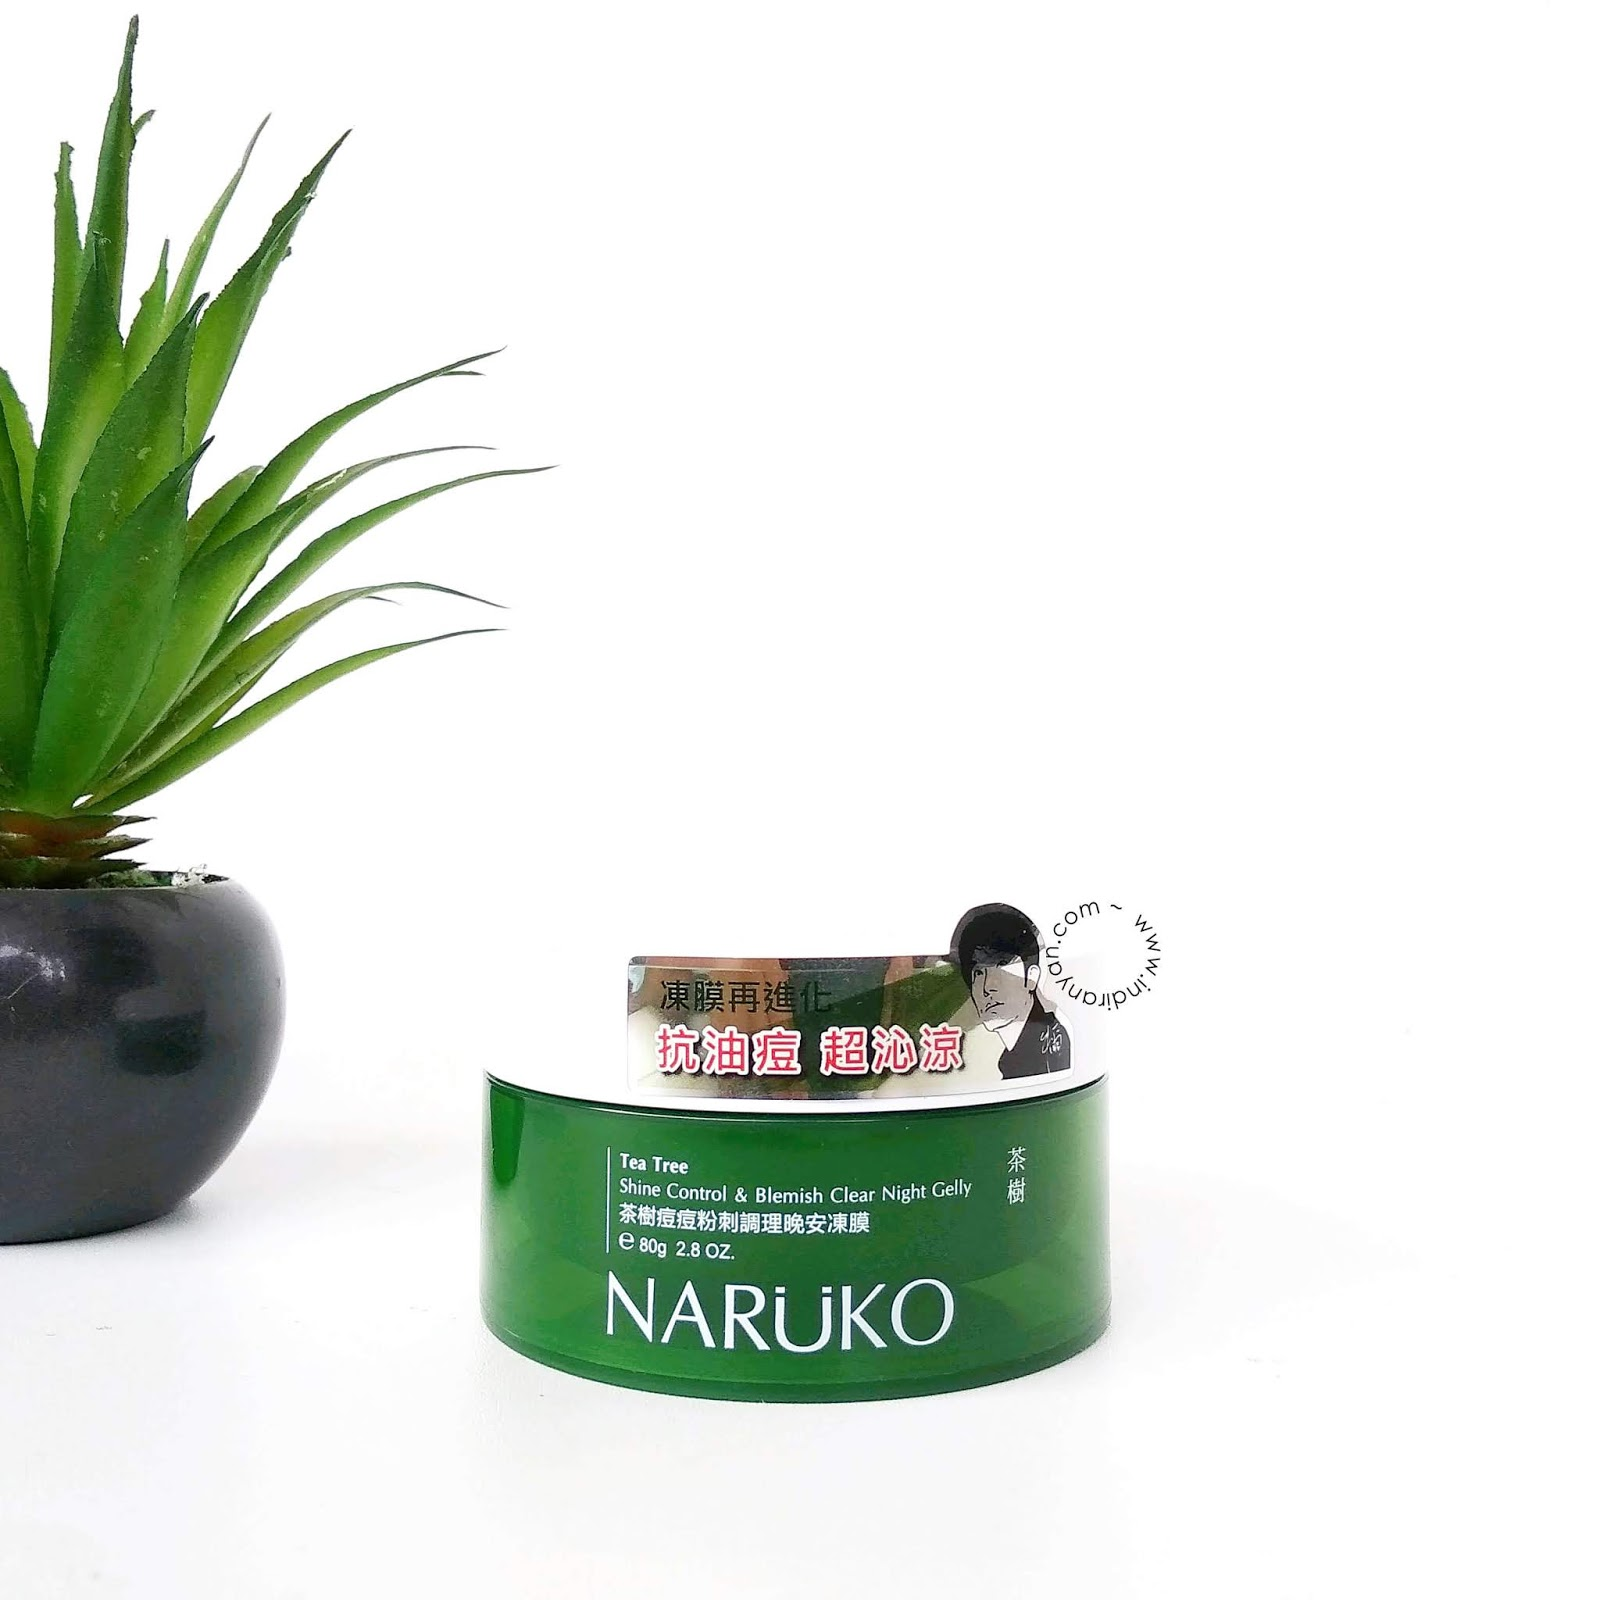 naruko-tea-tre-shine-control-blemish-clear-night-gelly-review-indonesia